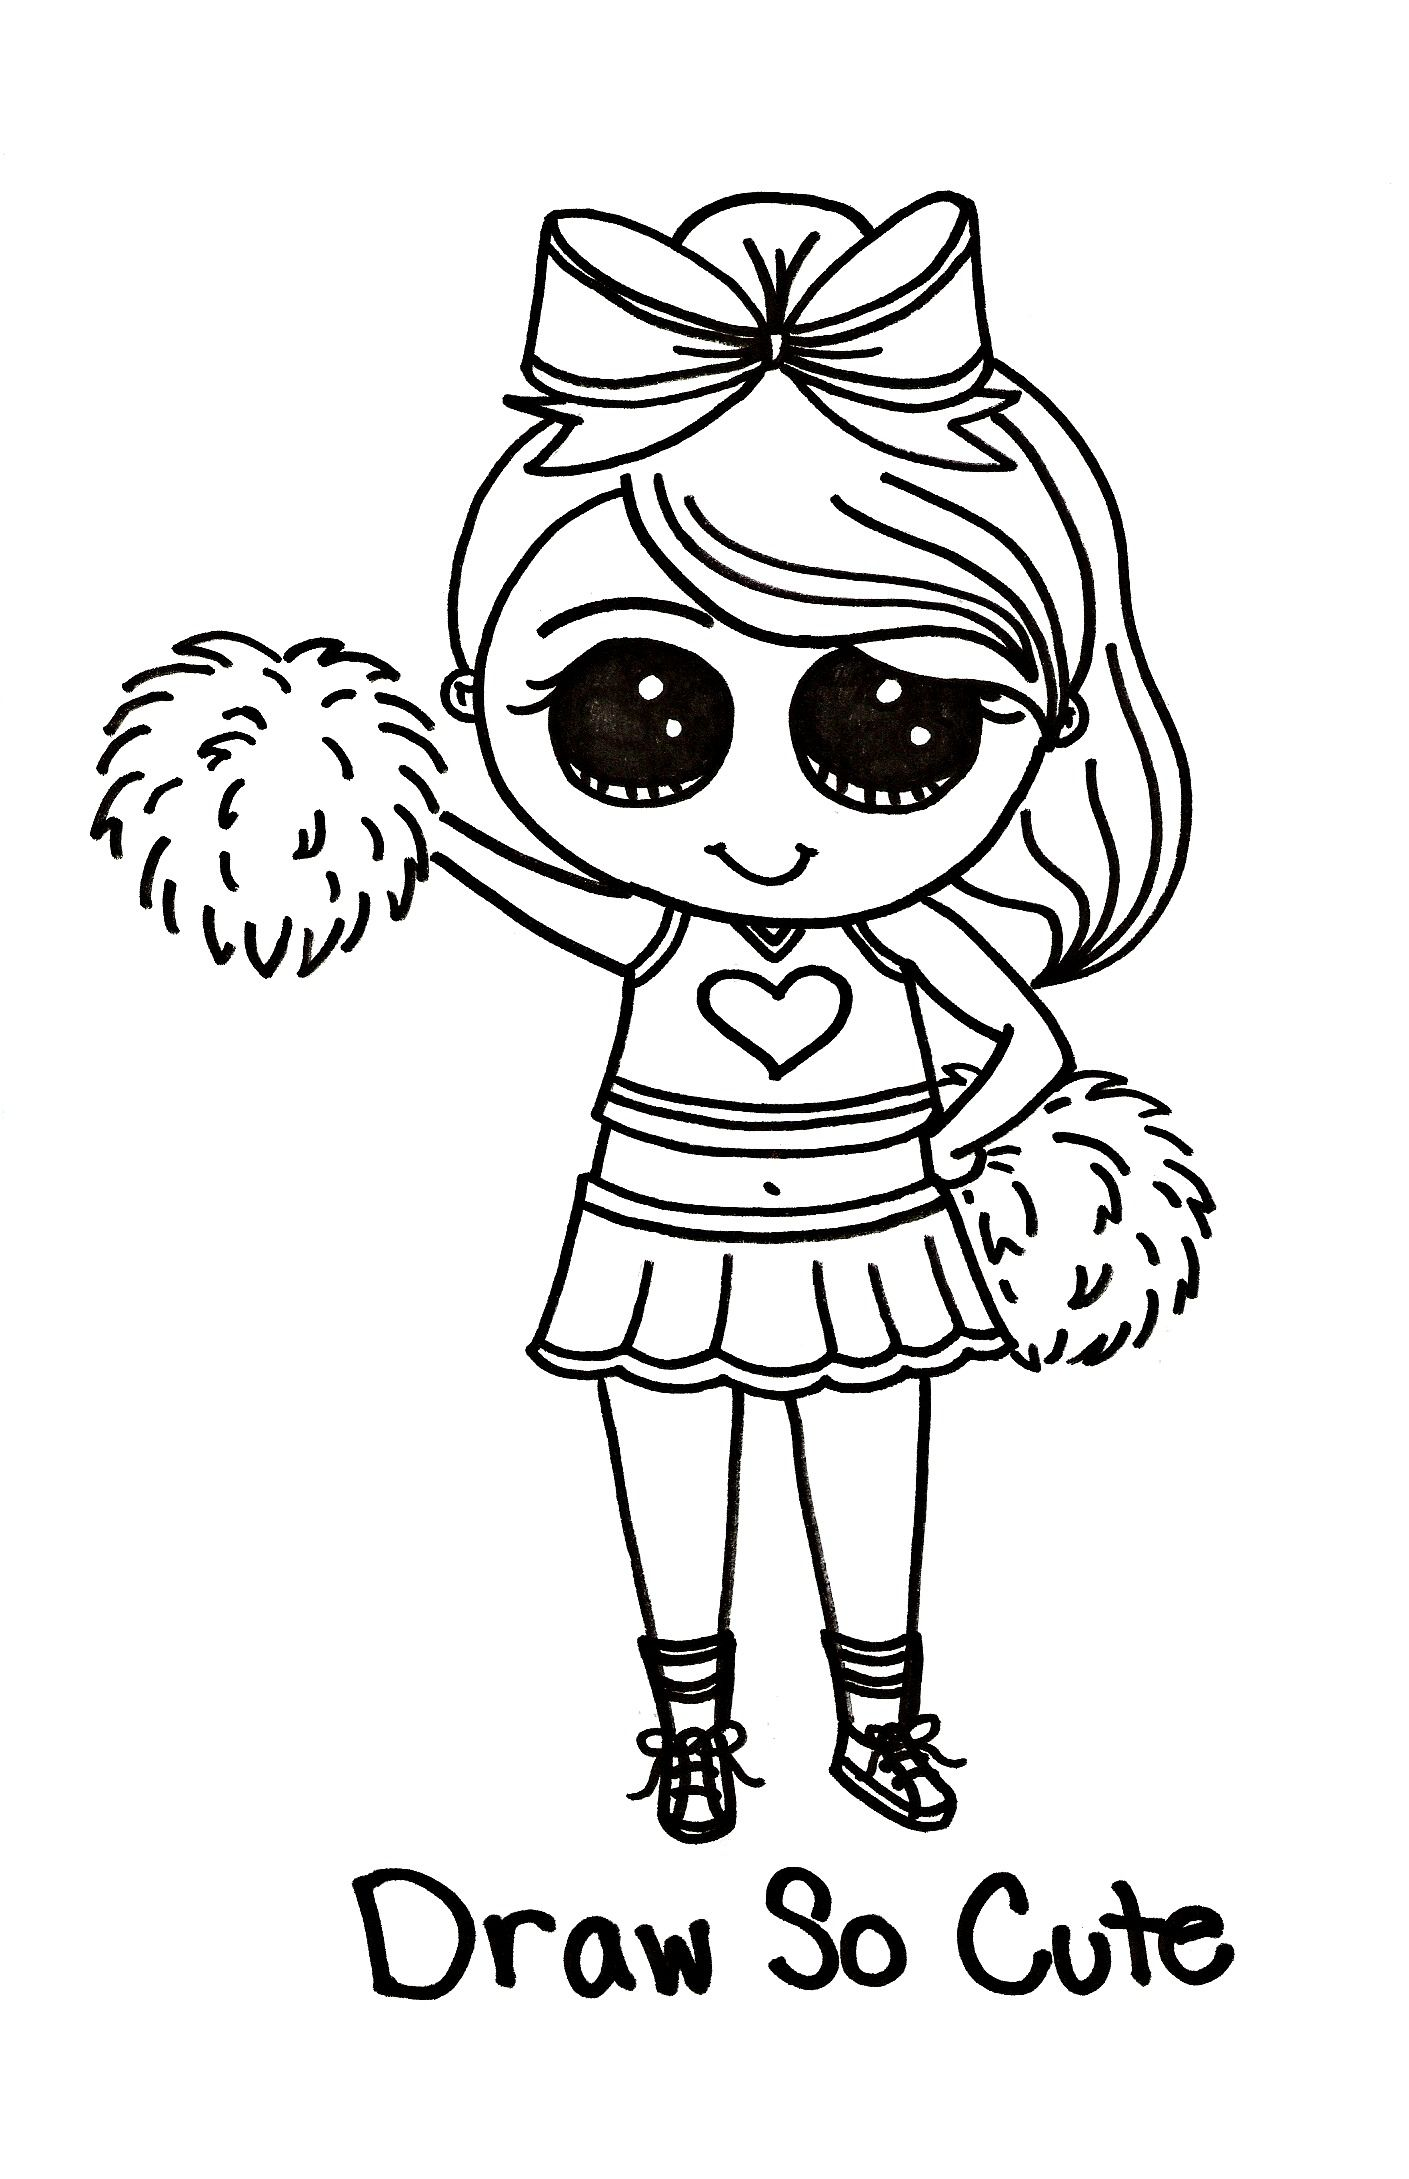 Draw So Cute Cheerleader Tipsy Scribbles A picture